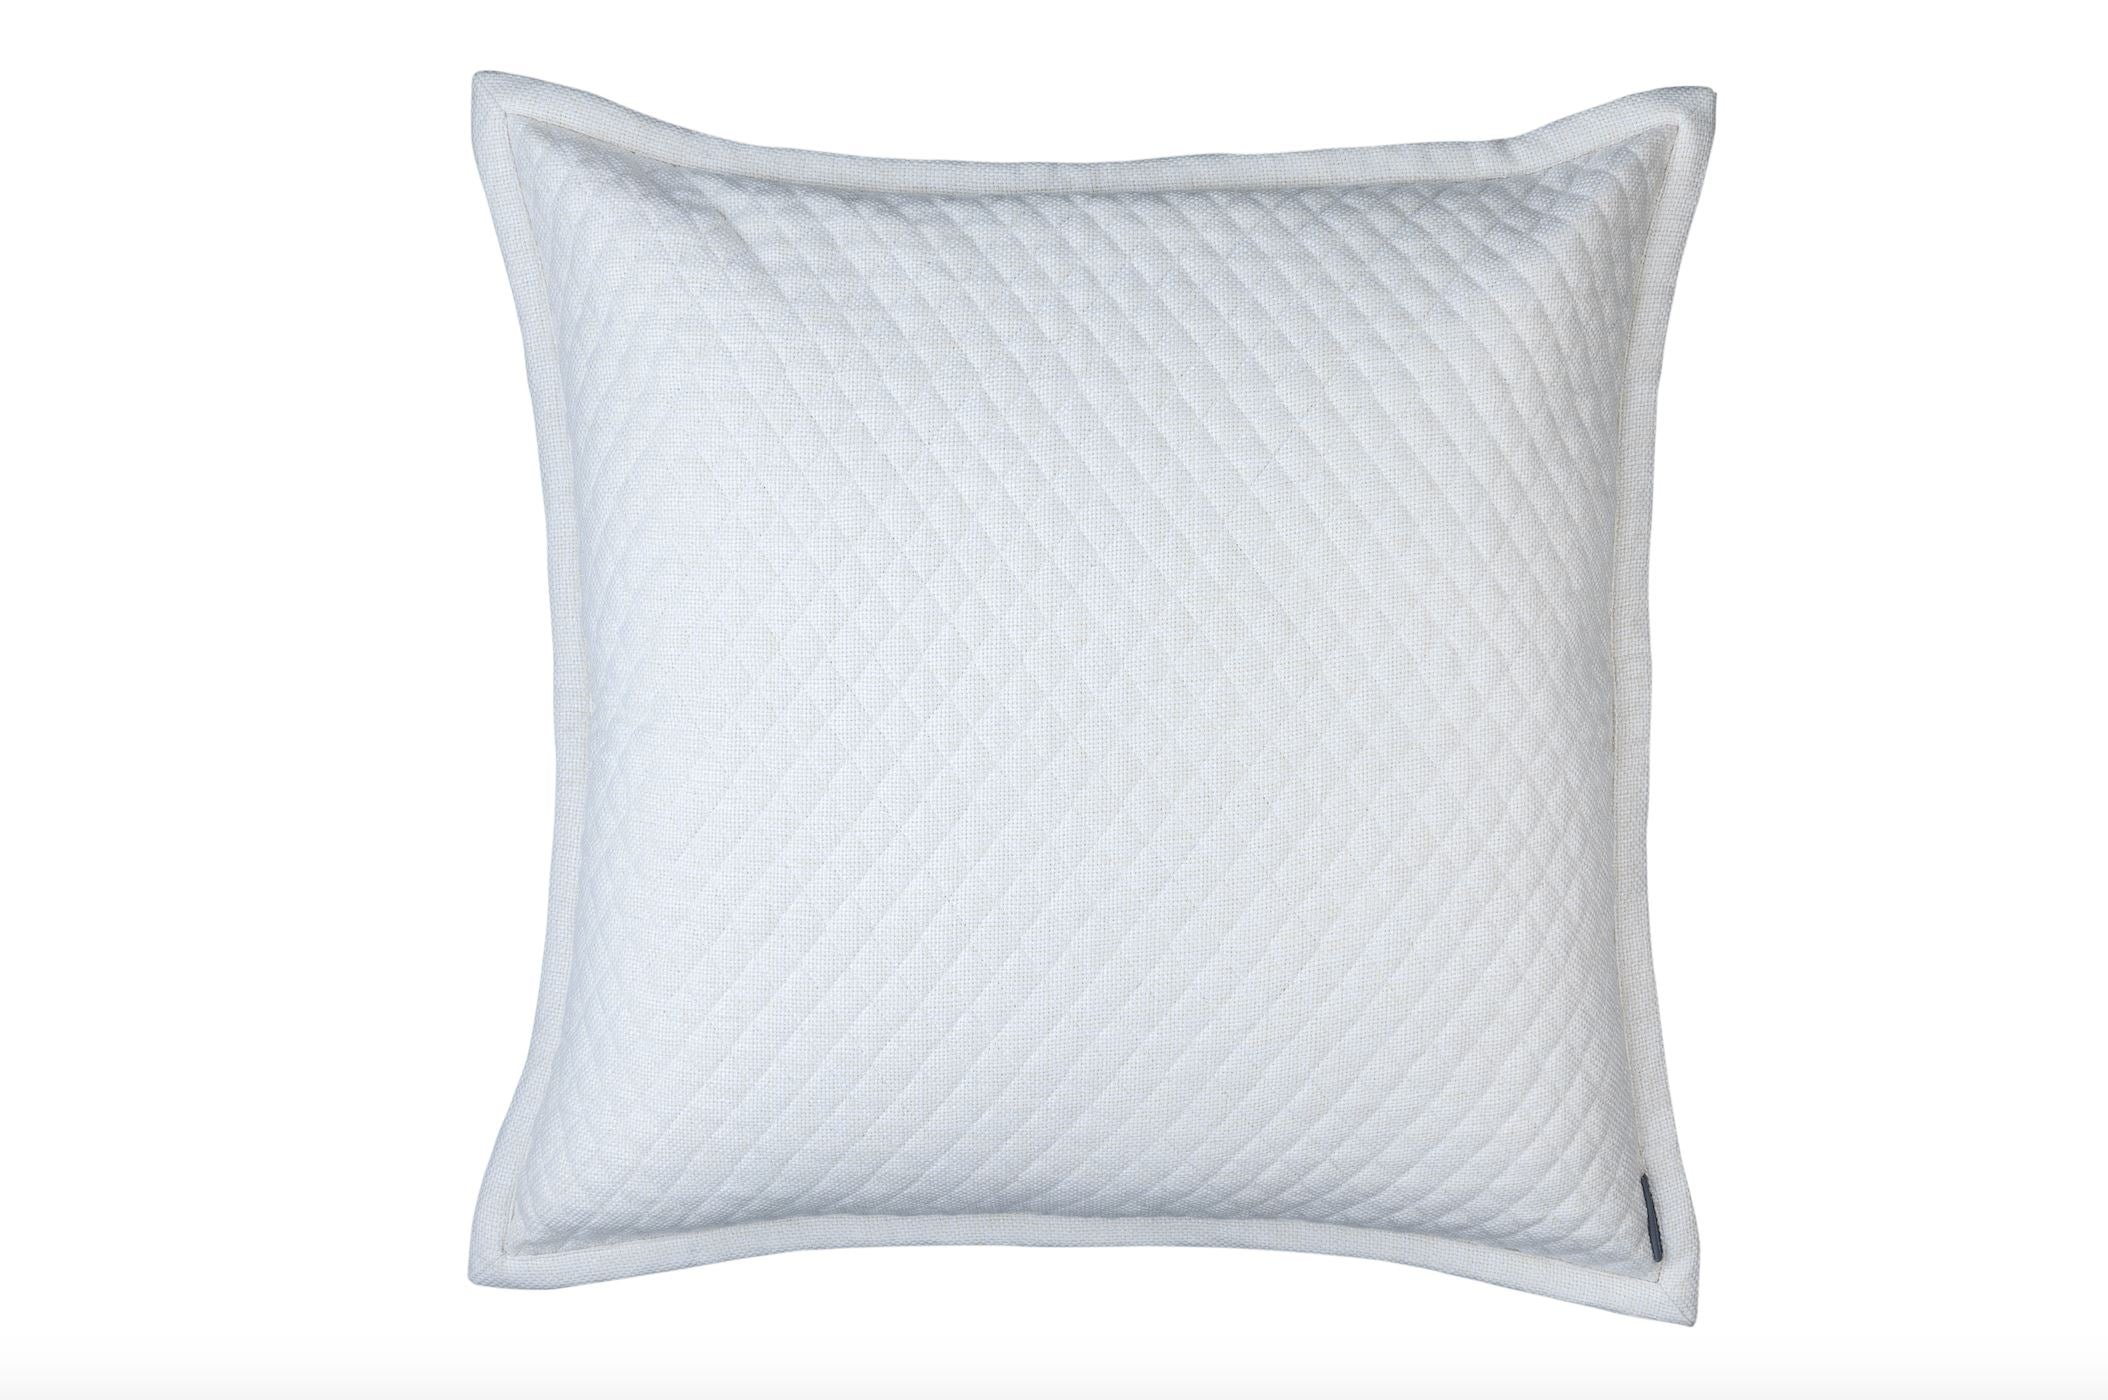 Lili Alessandra Laurie Quilted Ivory Basketweave Euro Pillow